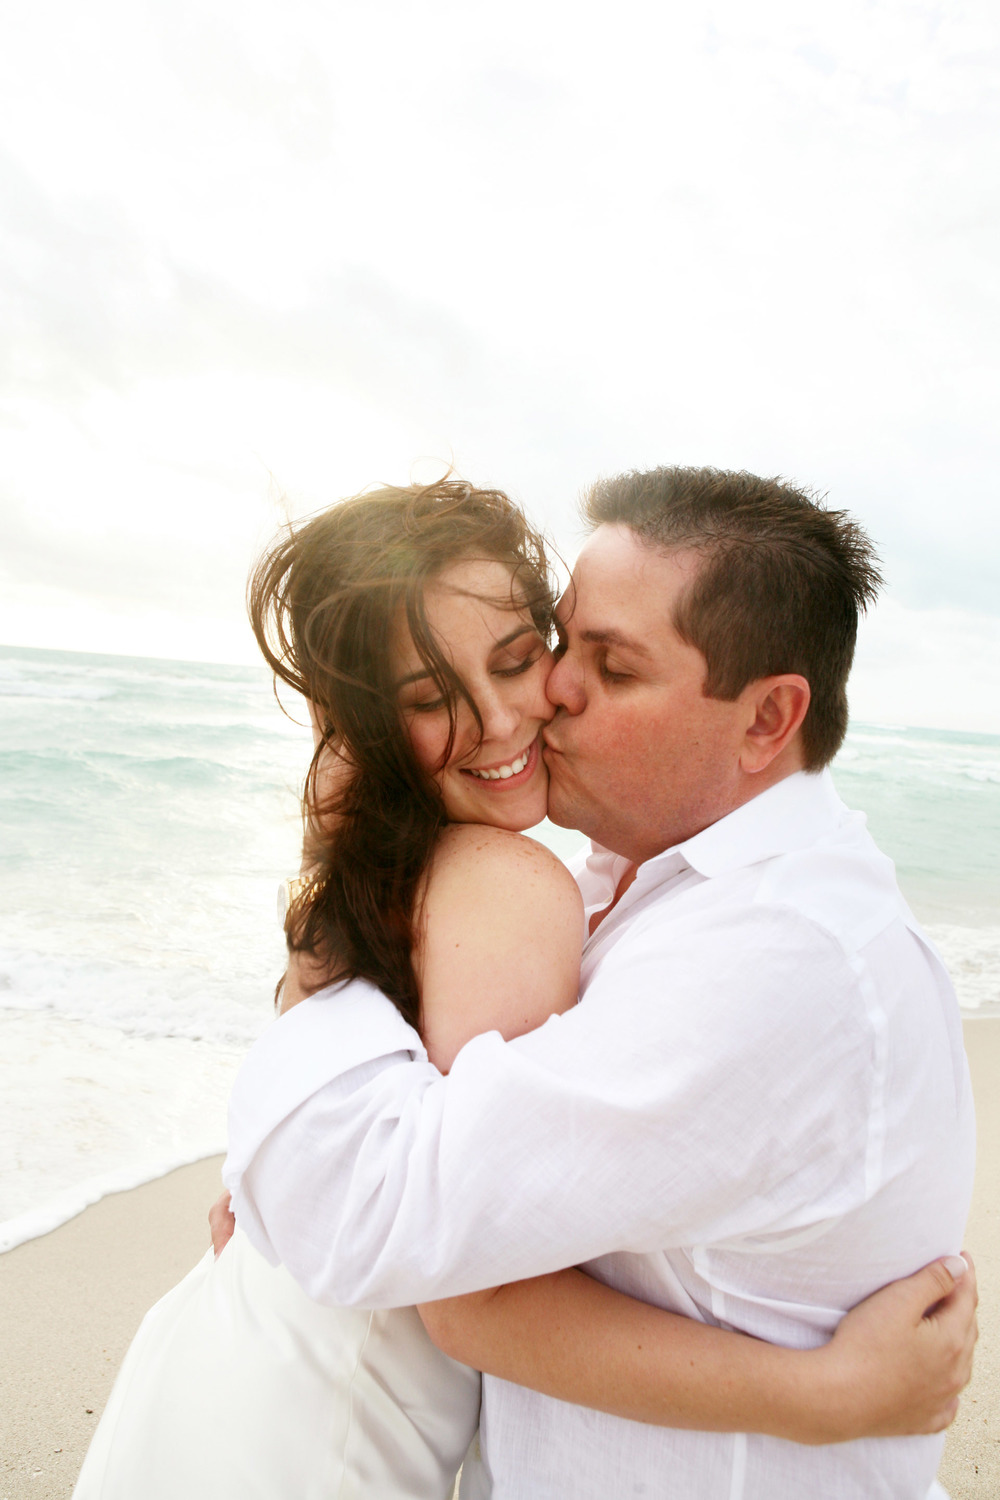 Professional wedding photography Atlanta. Destination wedding photographer: Tallahassee, Tampa, Orlando, Naples, Miami, Key West. I Shot The Bride®